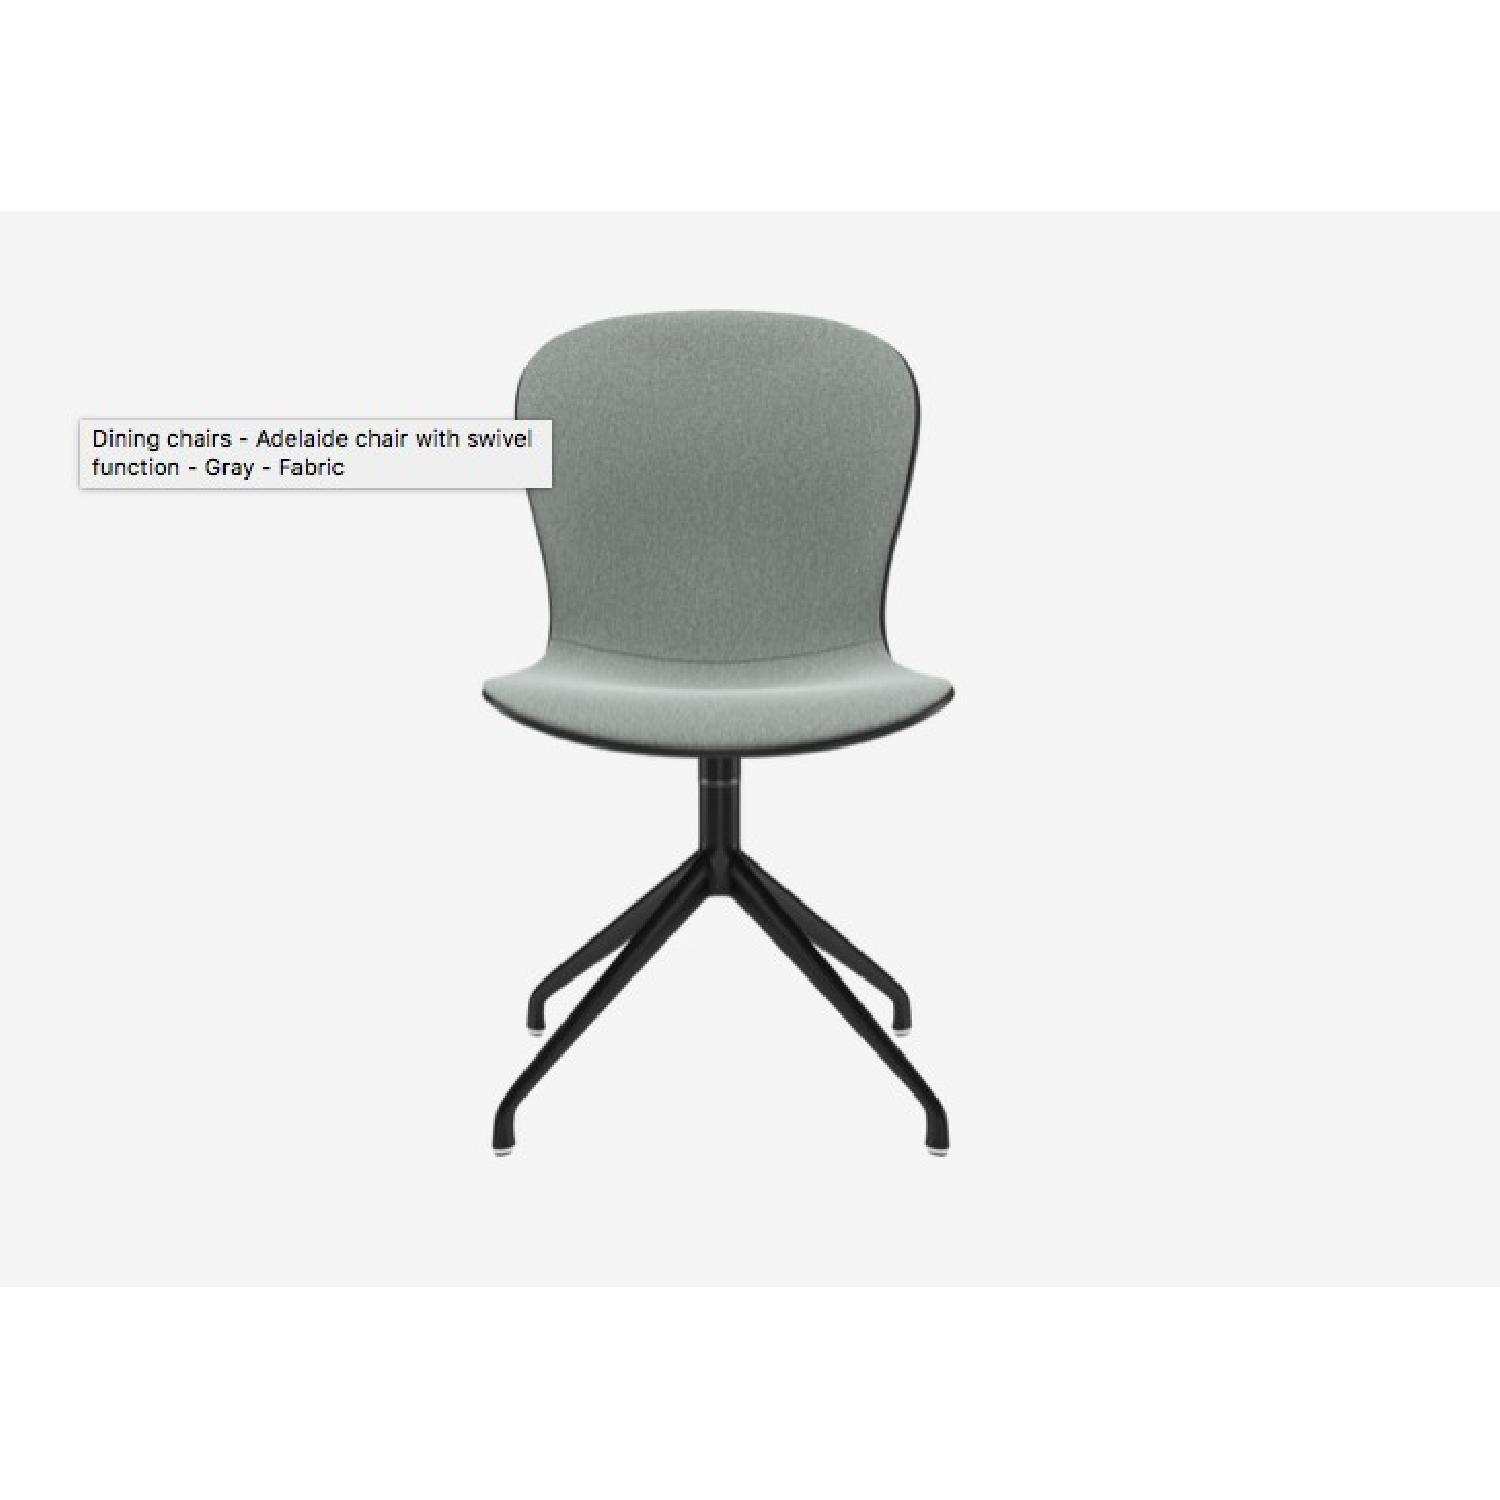 BoConcept Adelaide Office/Dining Chair w/ Swivel Motion - image-1